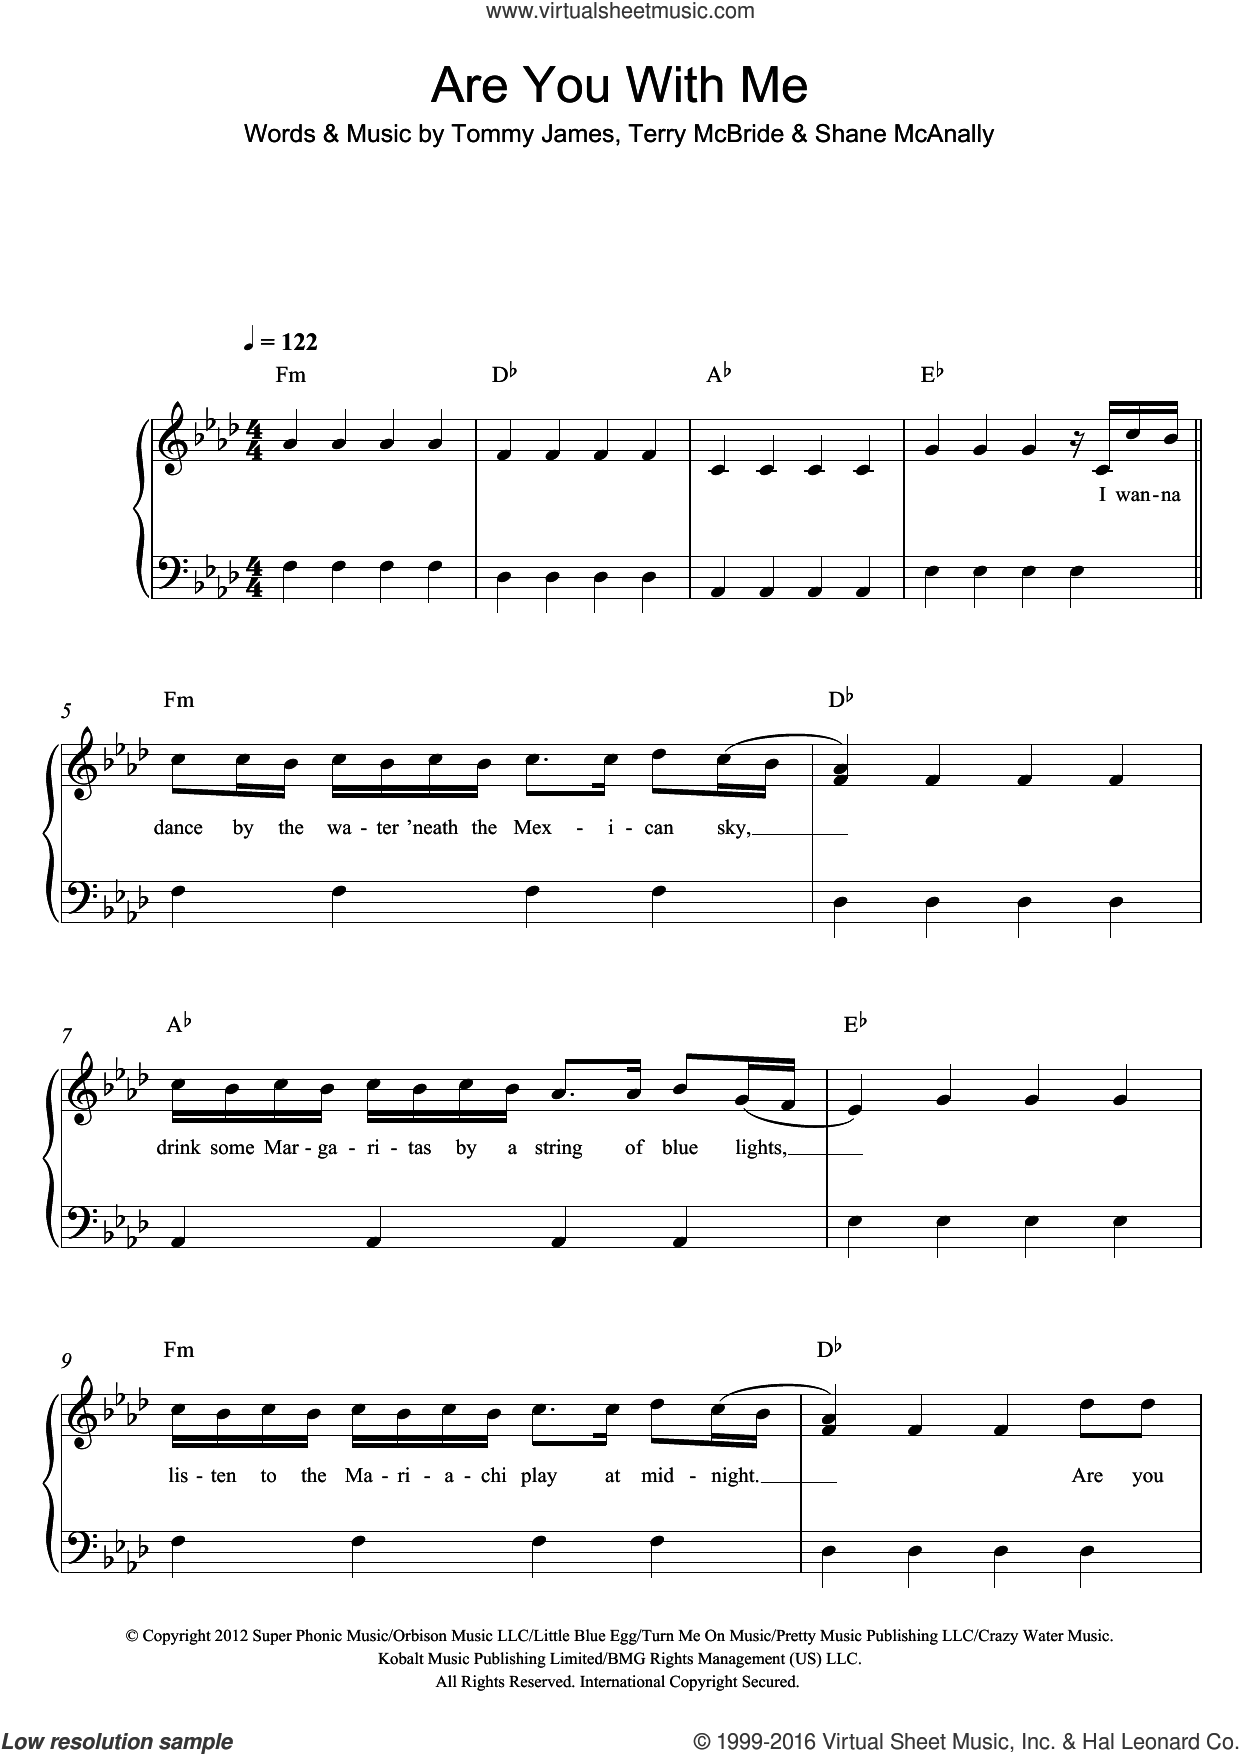 Are You With Me sheet music for piano solo by Lost Frequencies, Shane McAnally, Terry McBride and Tommy James, easy skill level